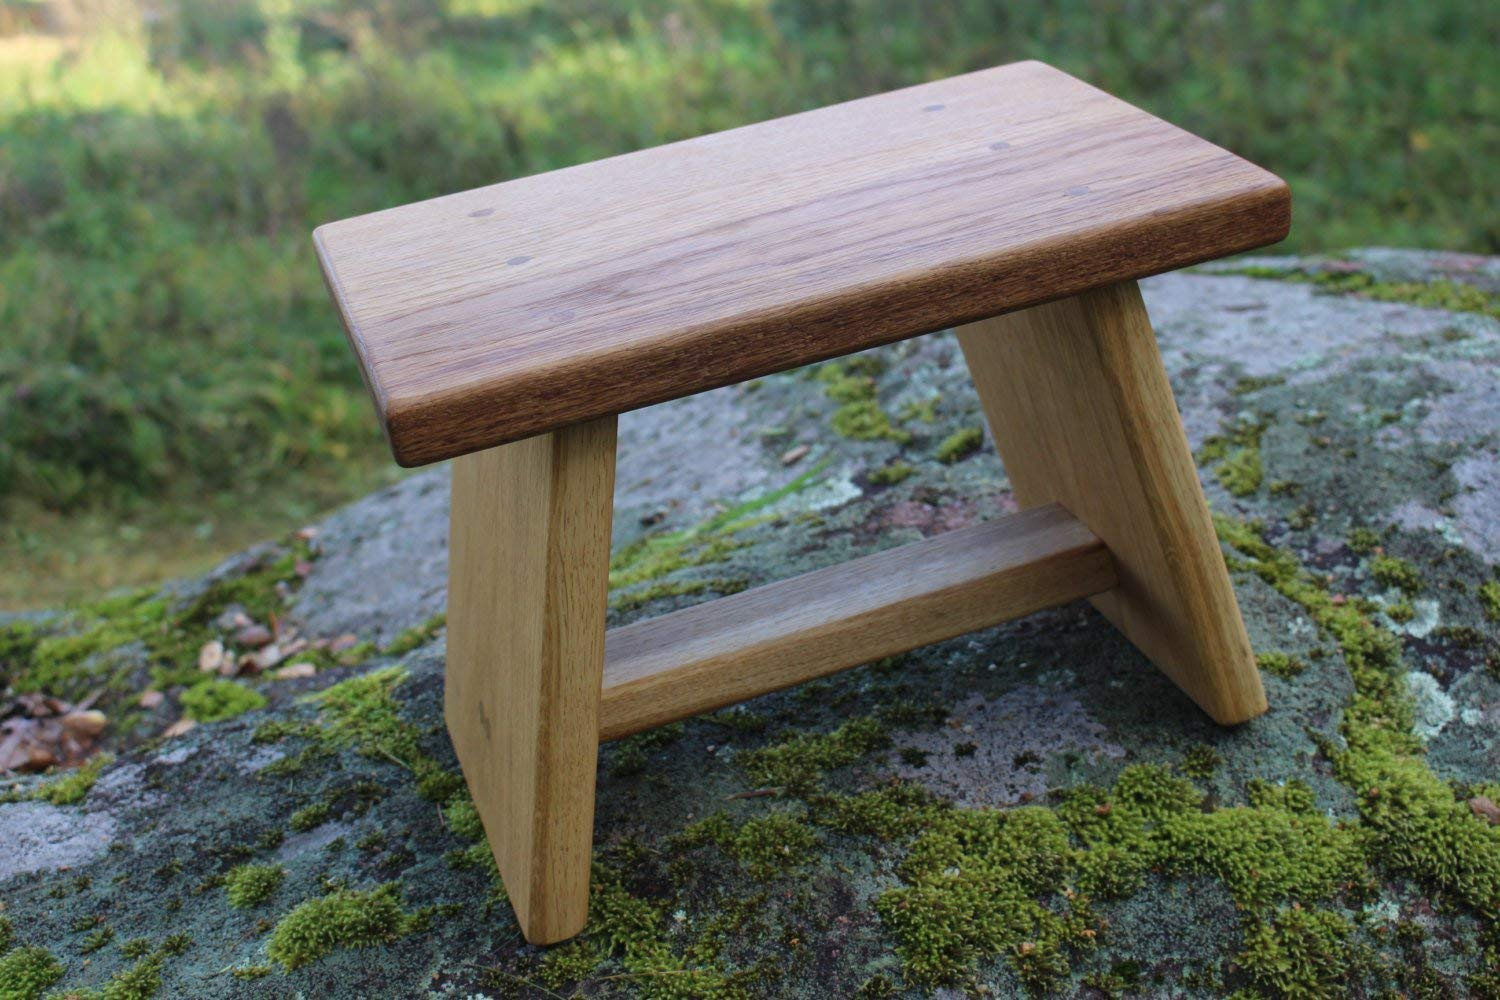 Step Stool, Wooden Chair For Kids, Rustic Stool, Bathroom Stool, Wooden Small Stool, Natural Stool, Hall Stool, Farm Milking Stool